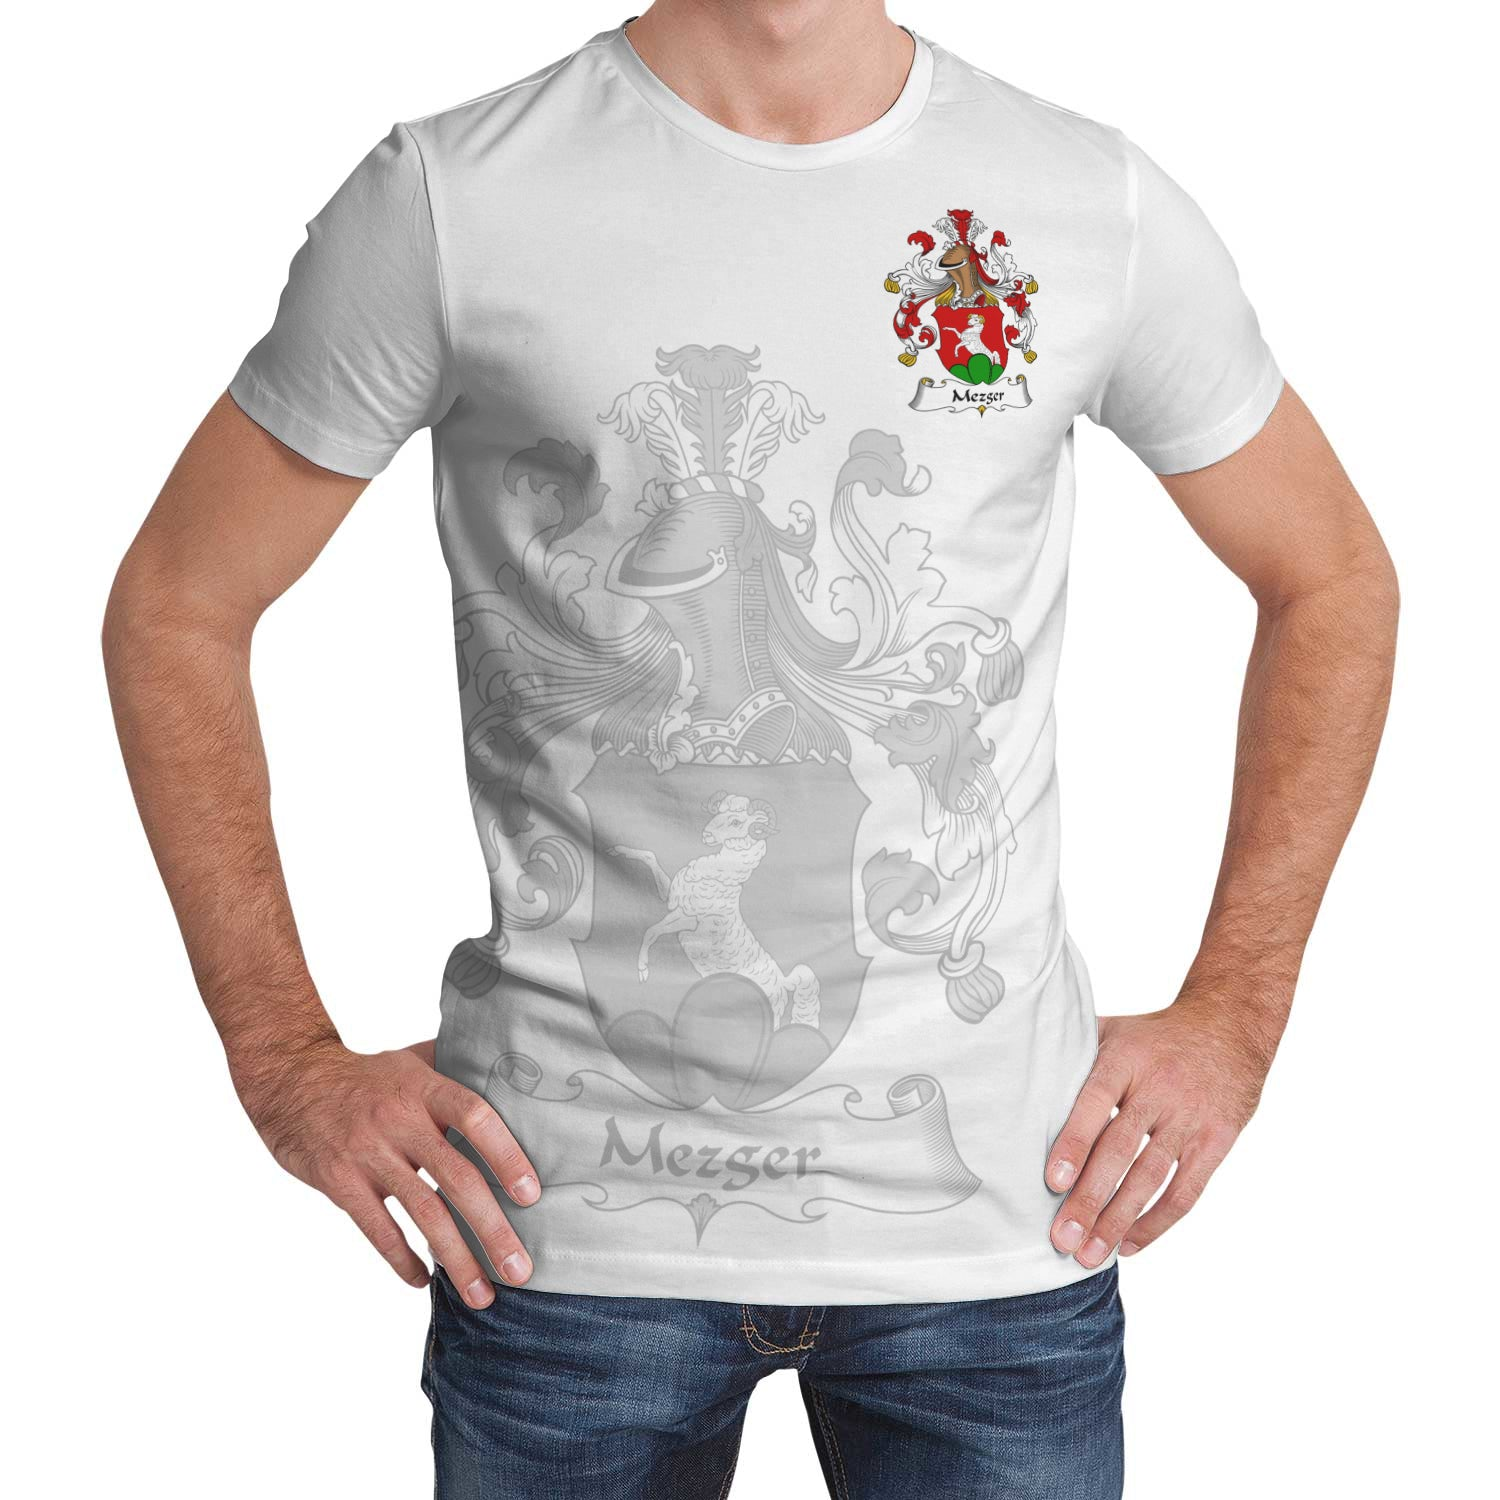 Mezger T-Shirt Germany - German Family Crest | Over 2000 German Crests | Women & Men | Clothing